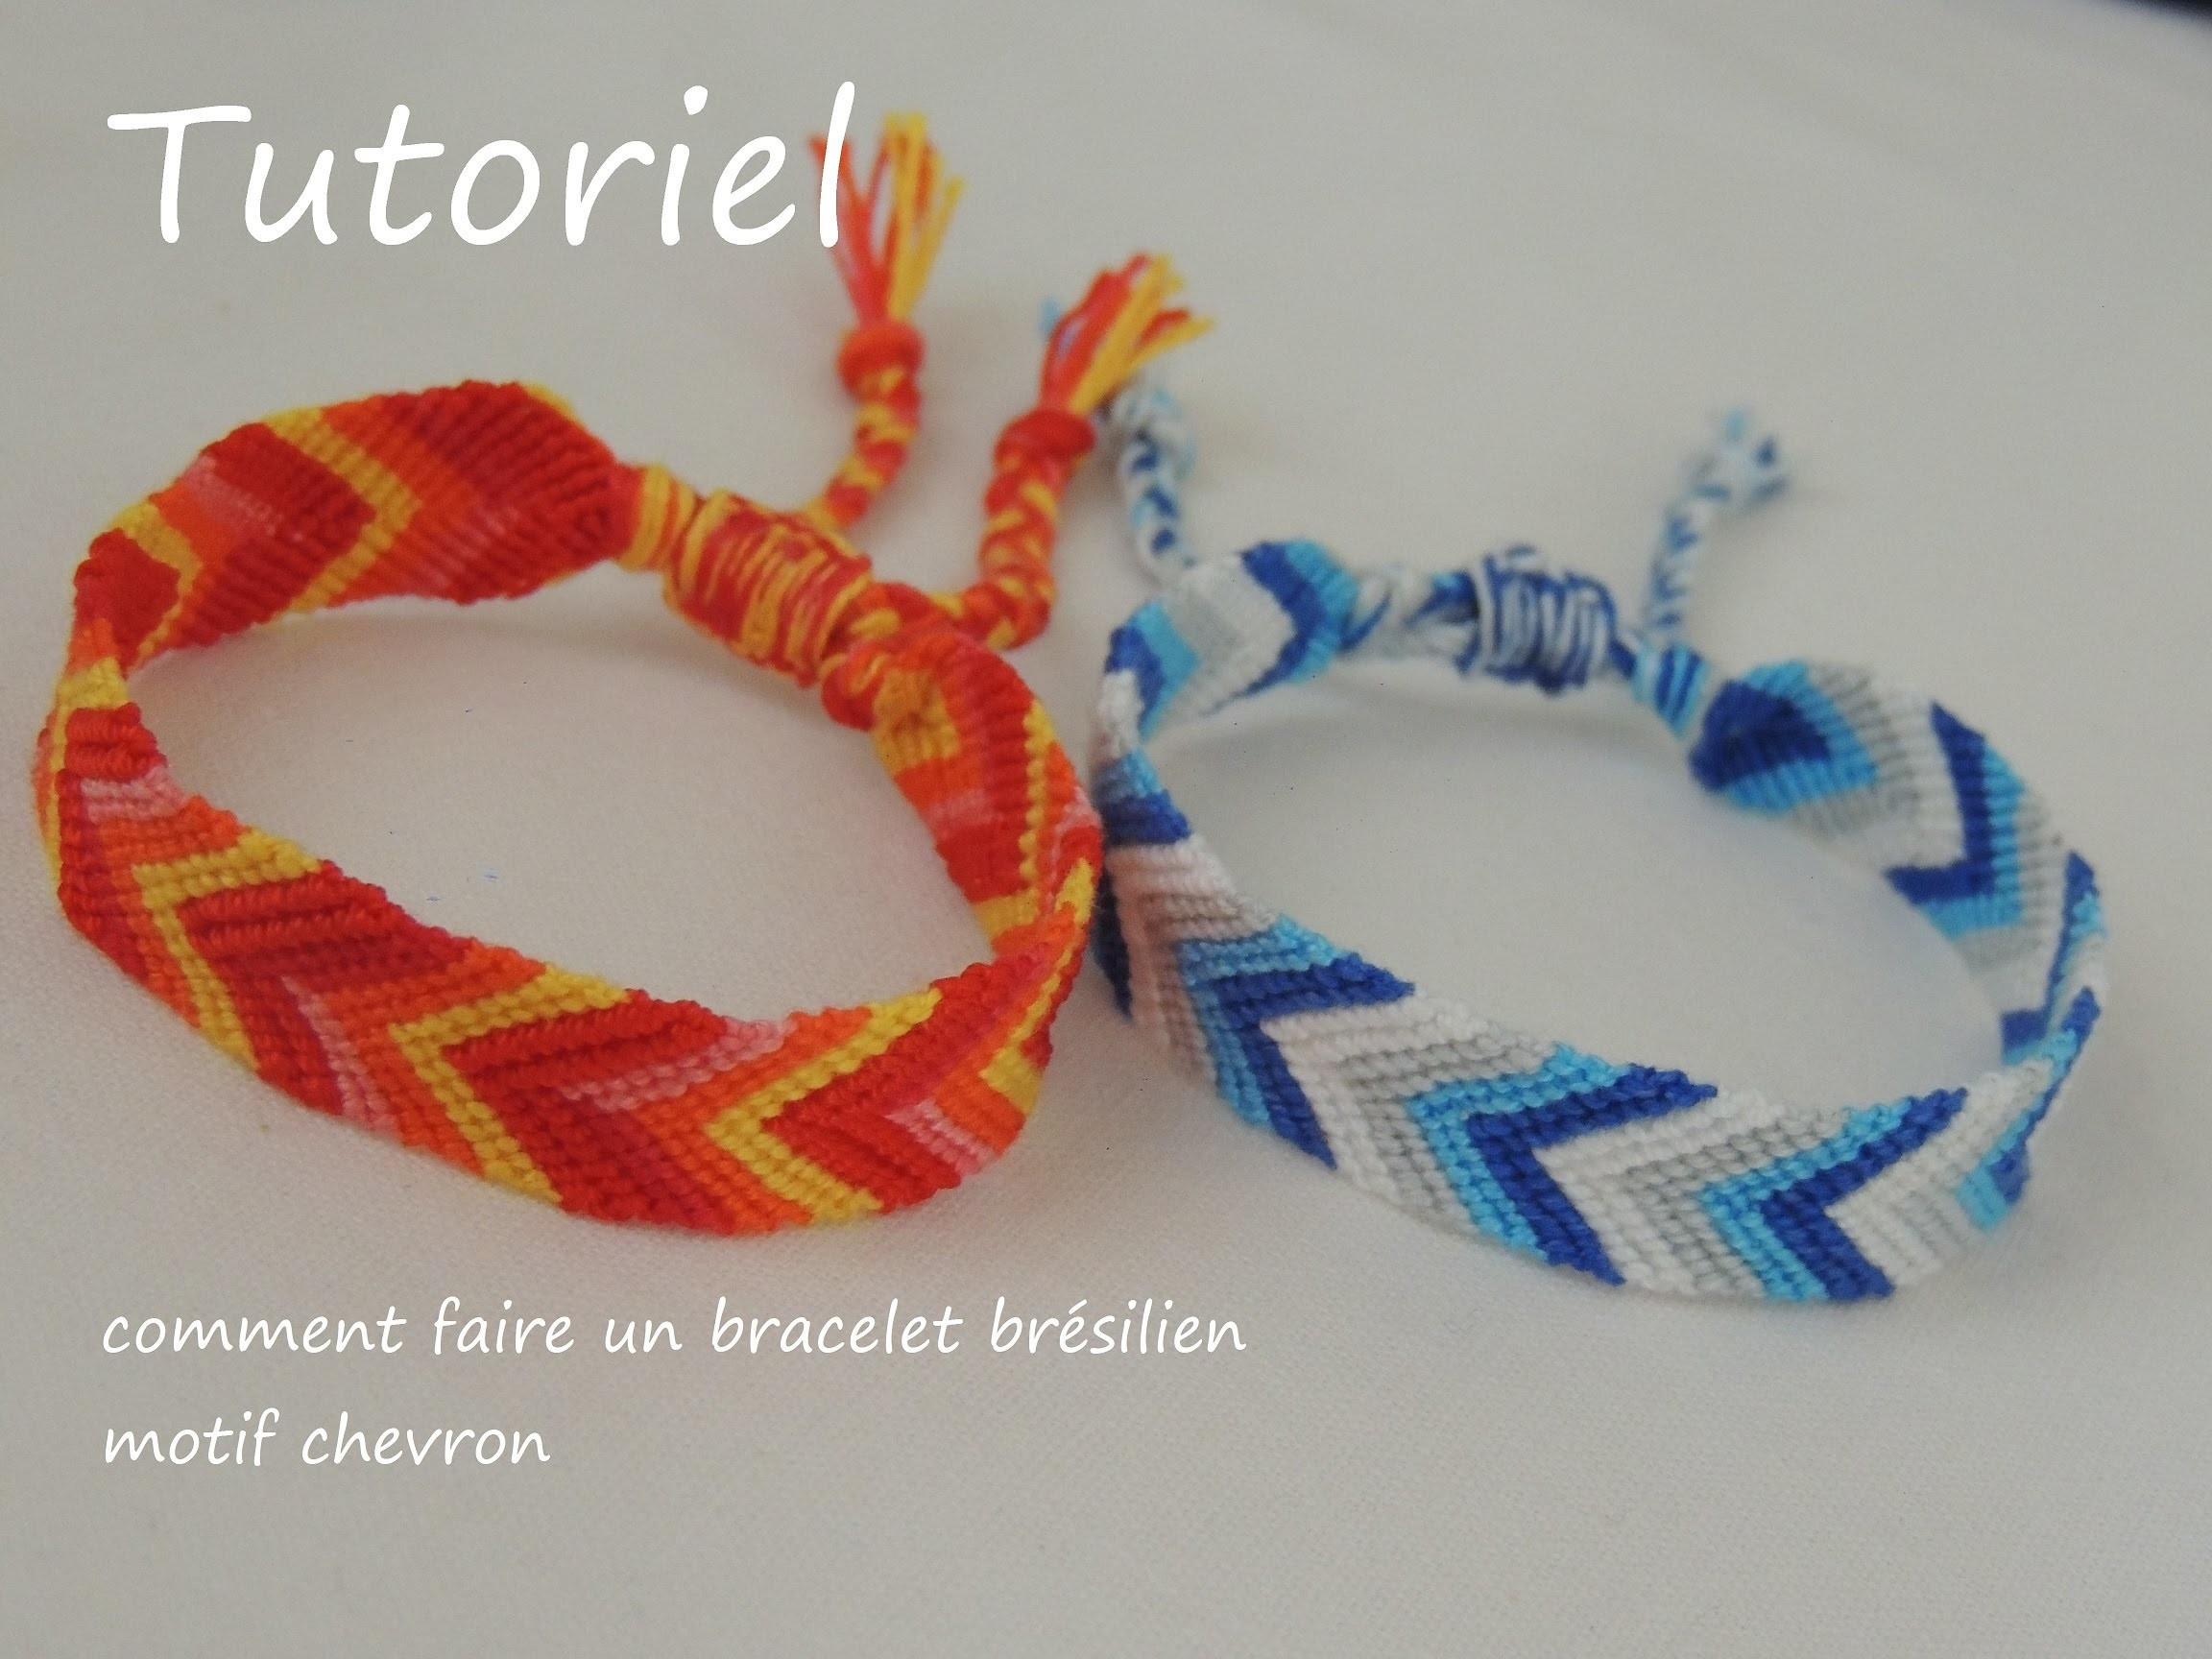 Comment faire un bracelet brésilien motif chevron (DIY chevron friendship bracelet)